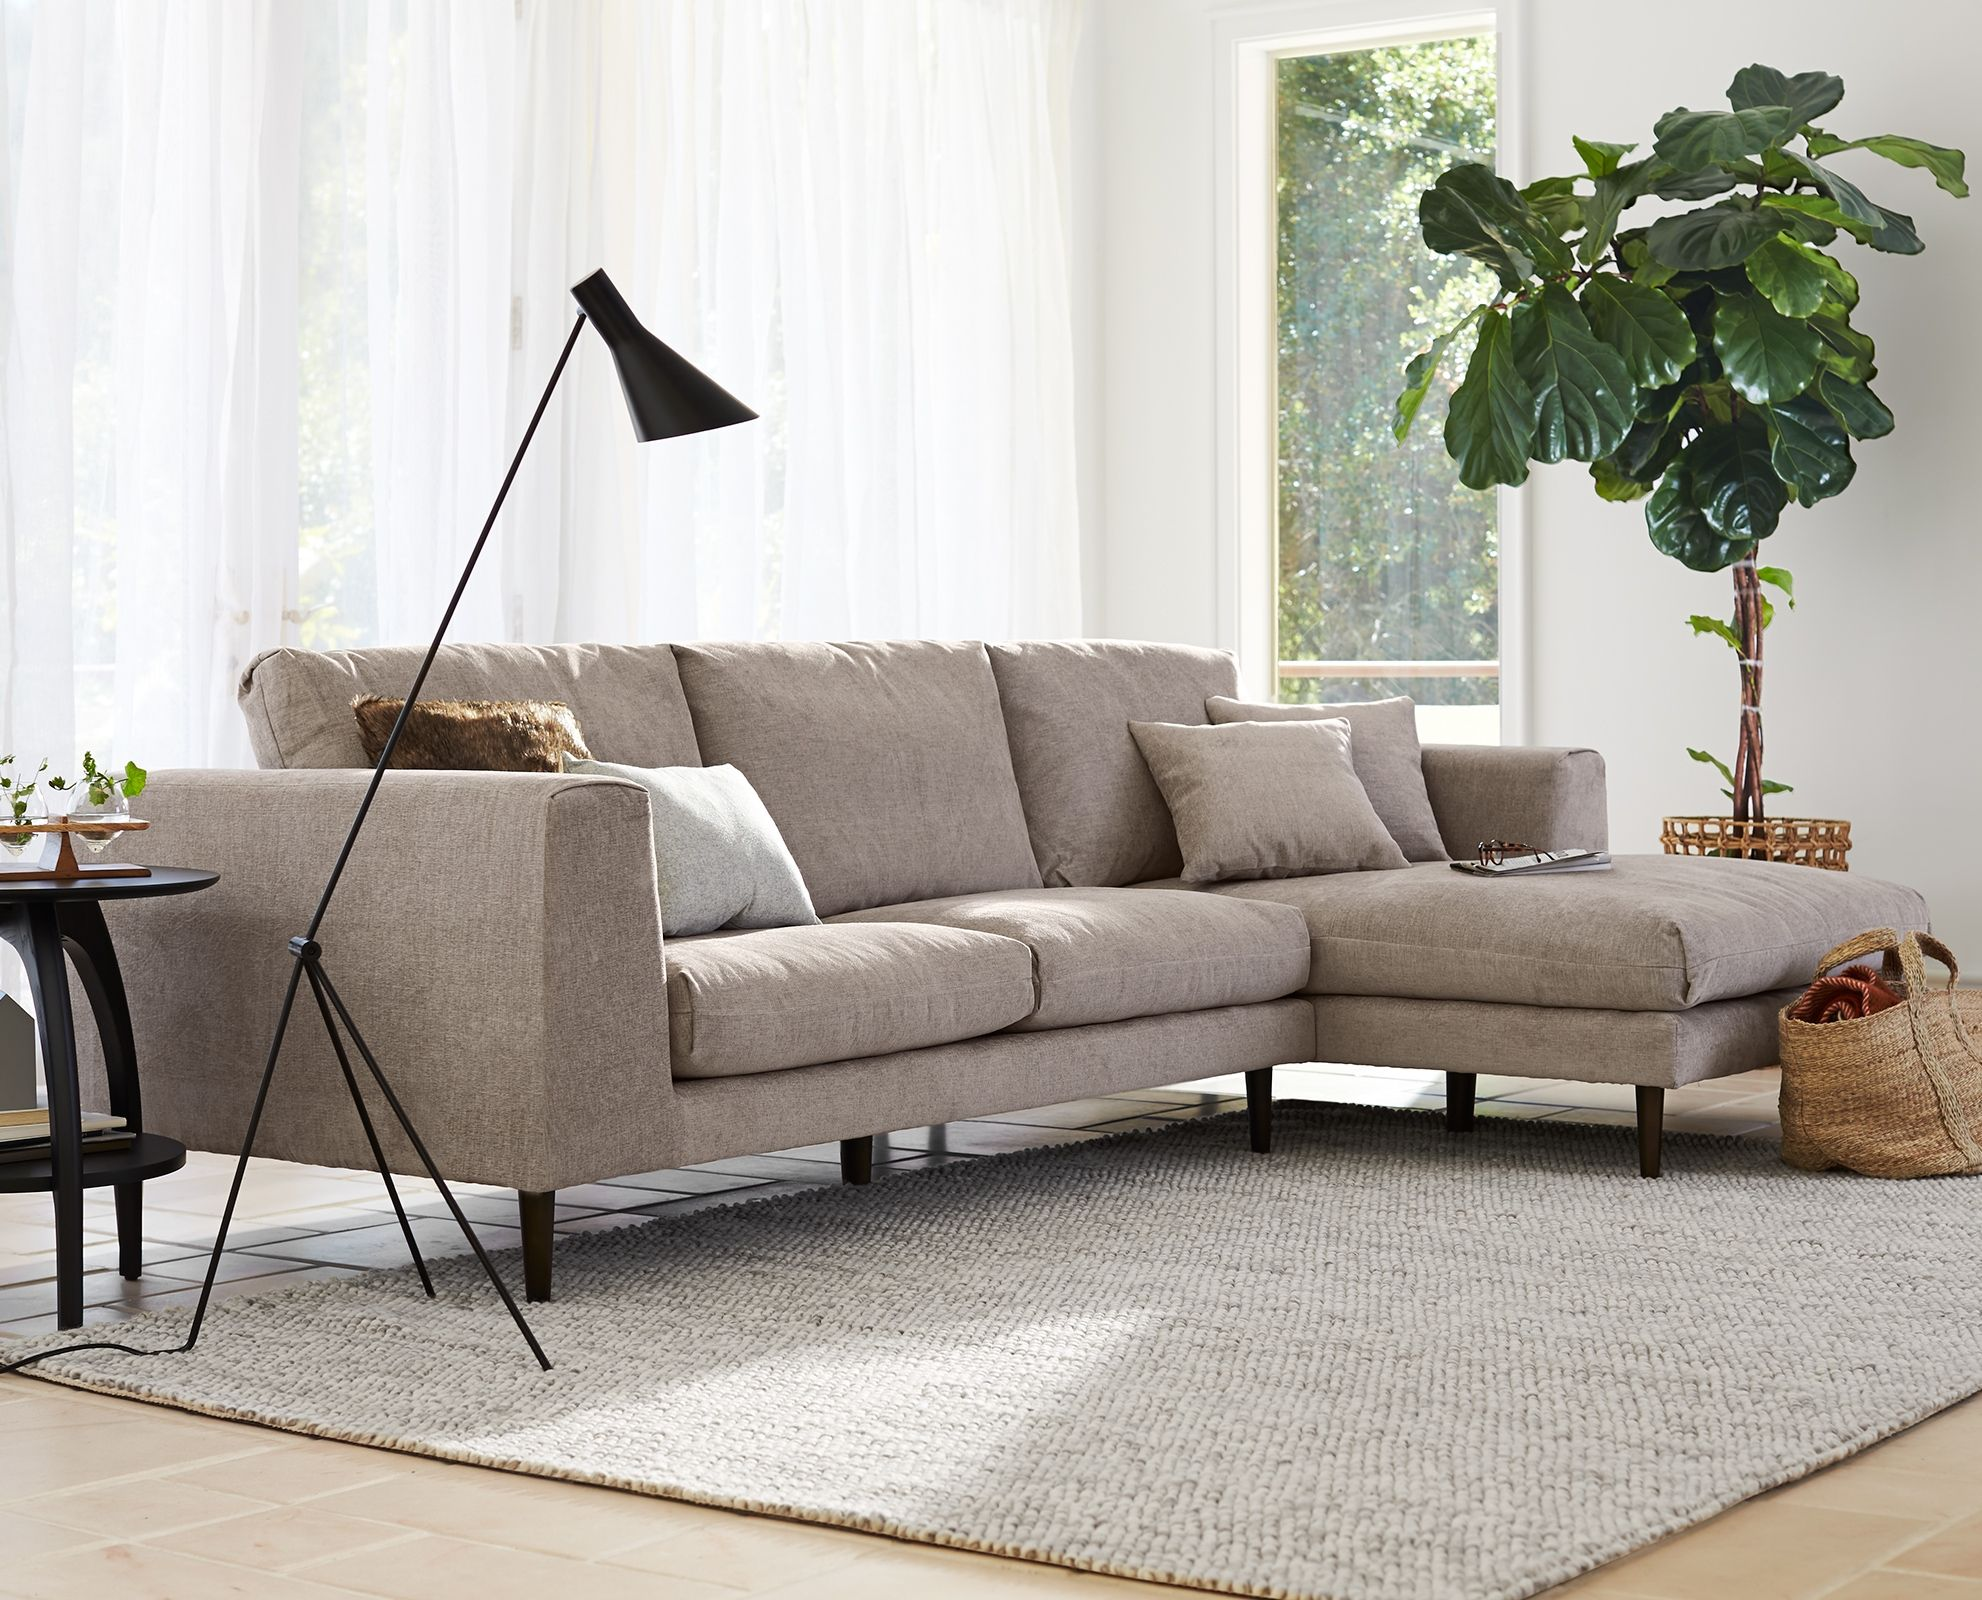 Living Room Design With Sectional Sofa Scandinavian Design Sectional Sofas  Httpml2R  Pinterest